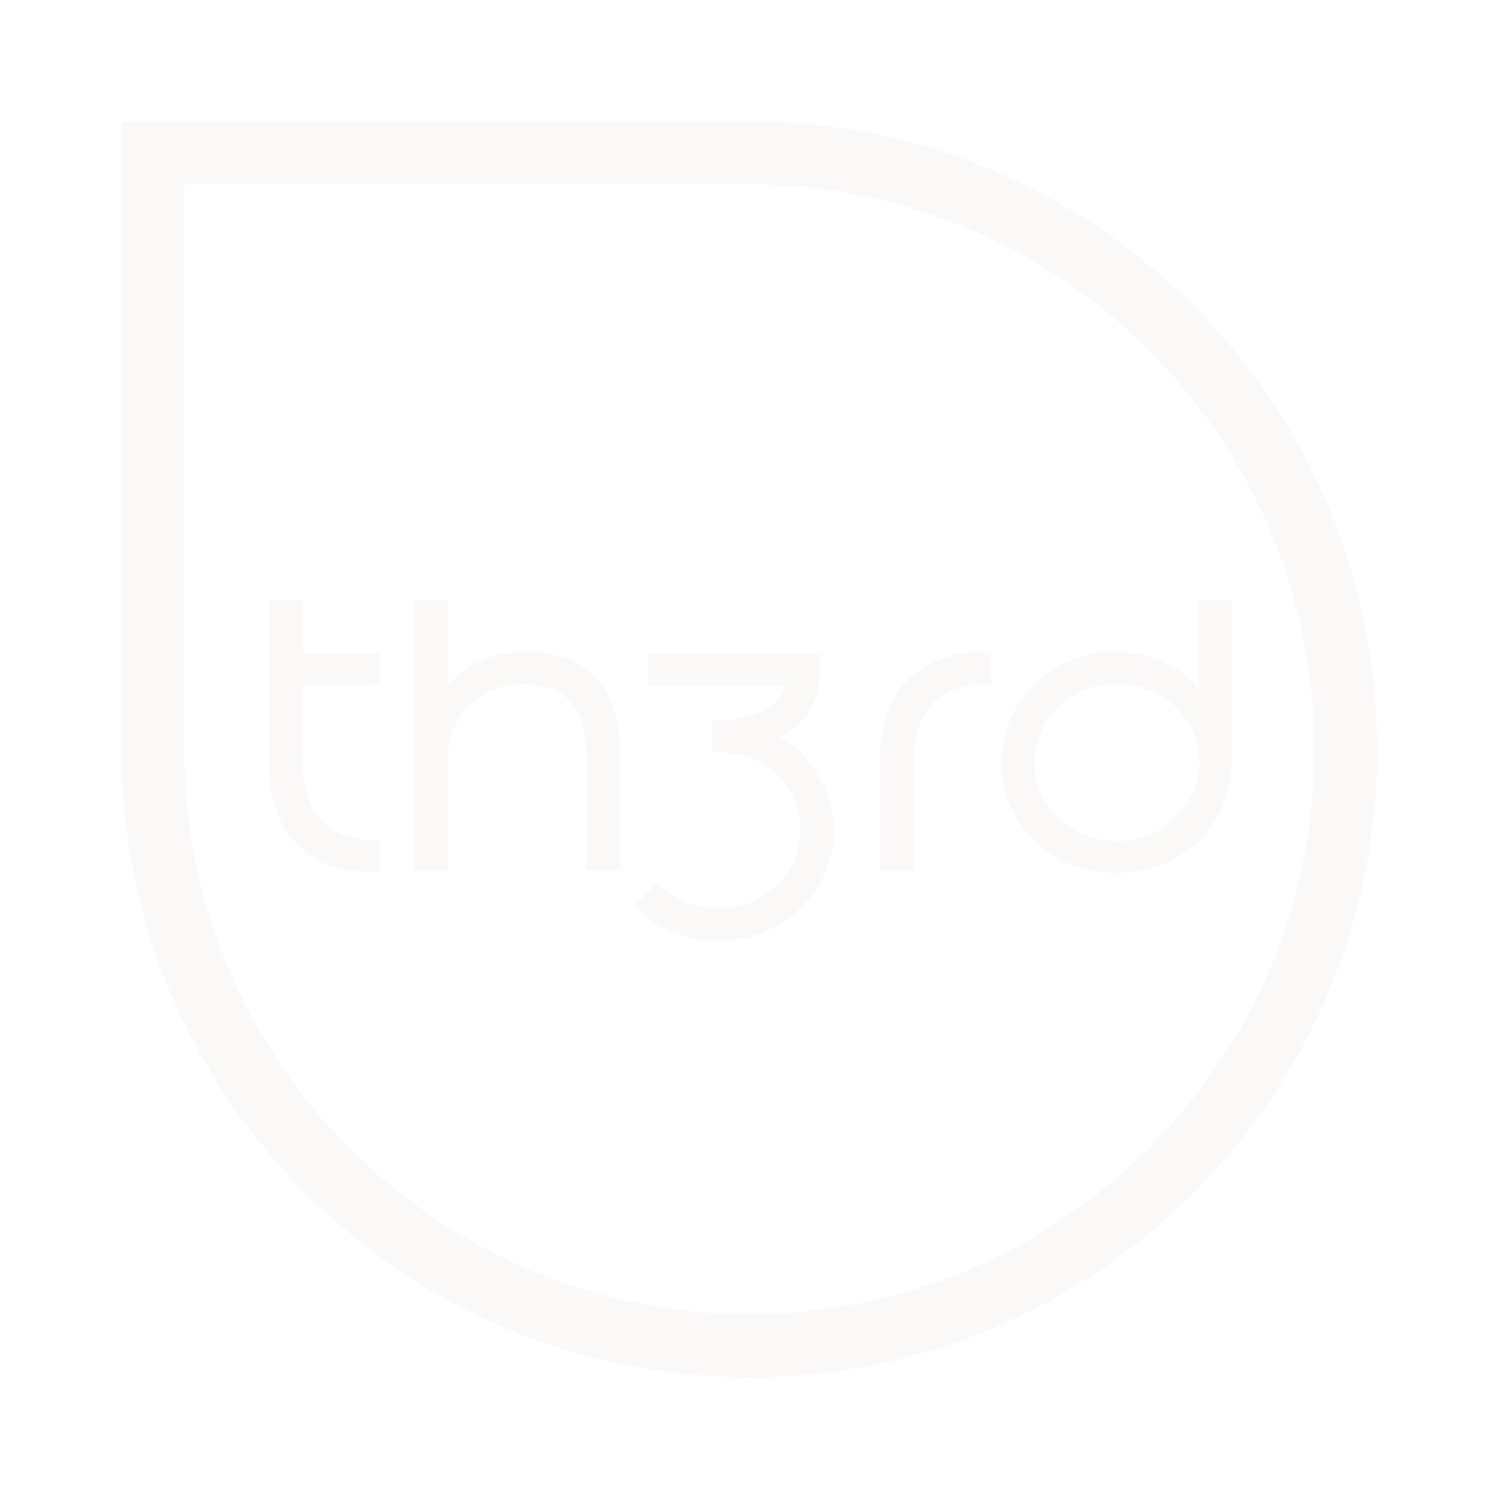 The development of Th3rd software solution for 3d-scanning and 3d-printing Logo